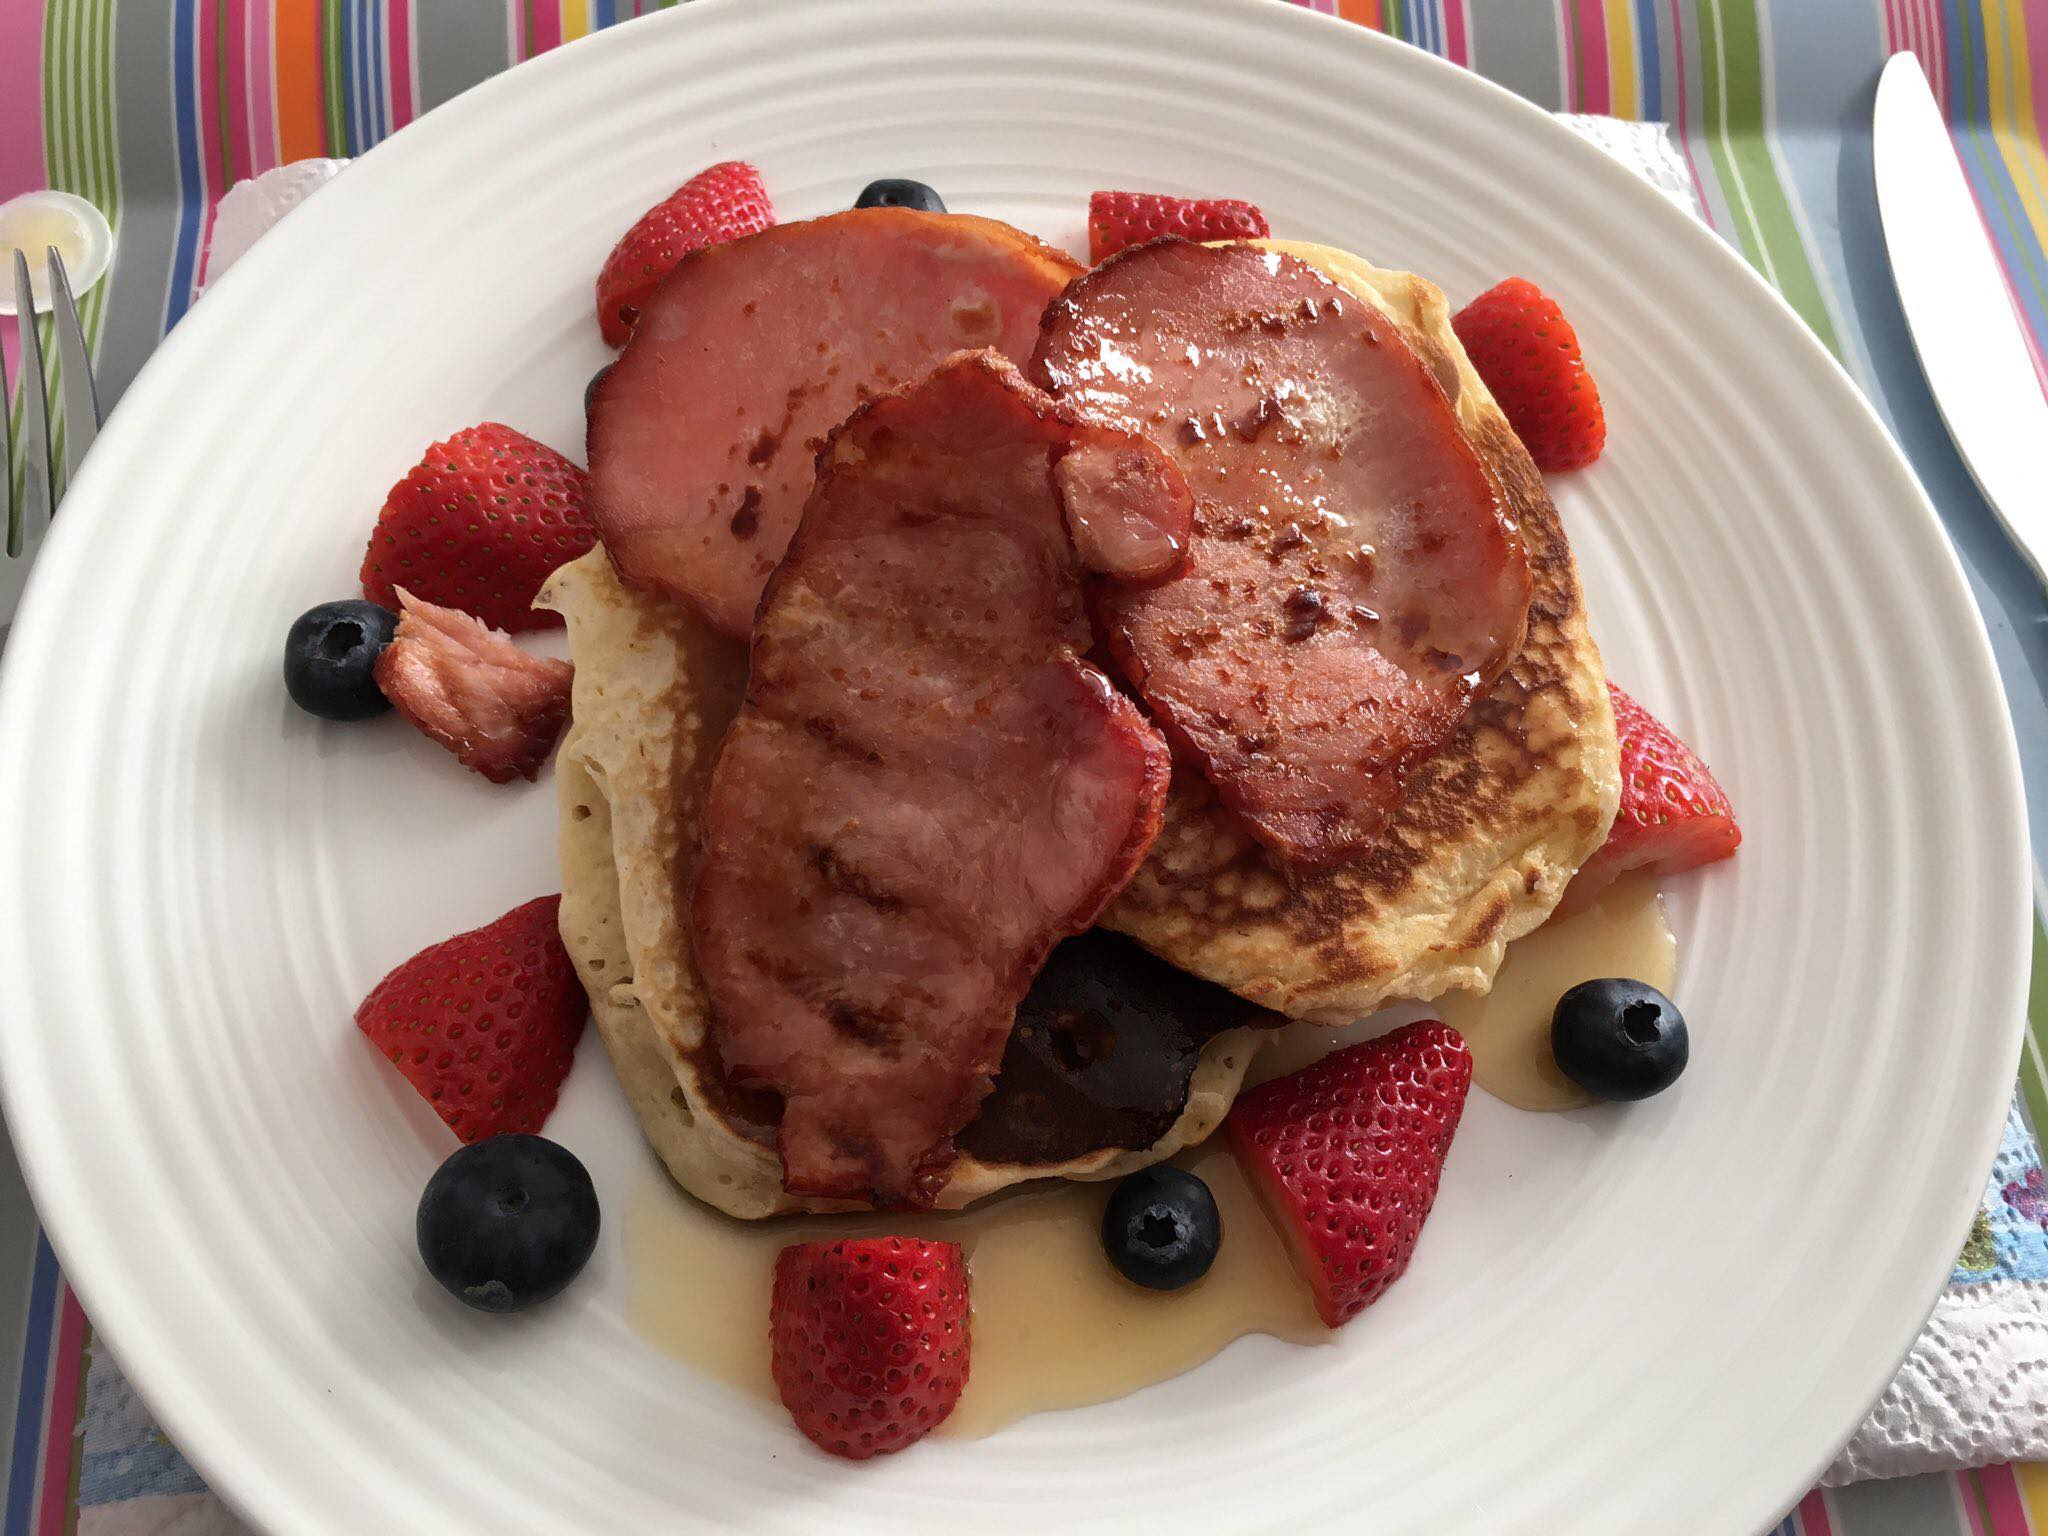 Pancakes p23 from the Mountain Cafe Cookbook